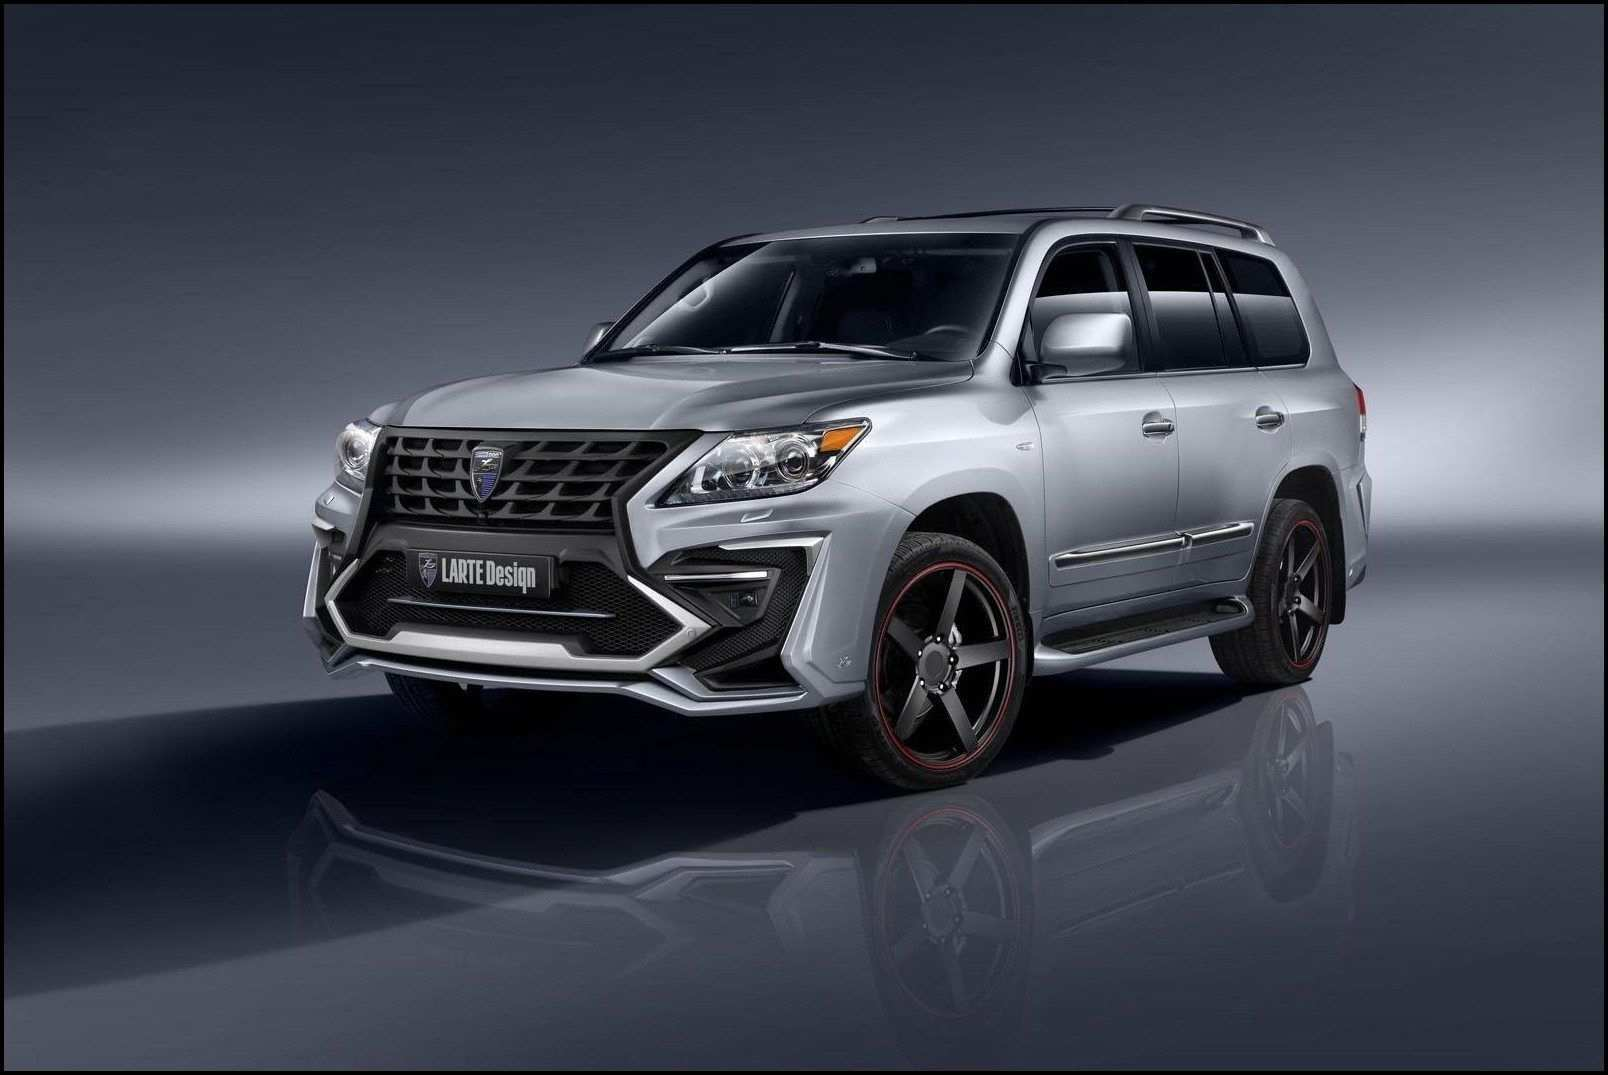 15 Concept of 2019 Lexus Gx 460 Release Date Spesification by 2019 Lexus Gx 460 Release Date